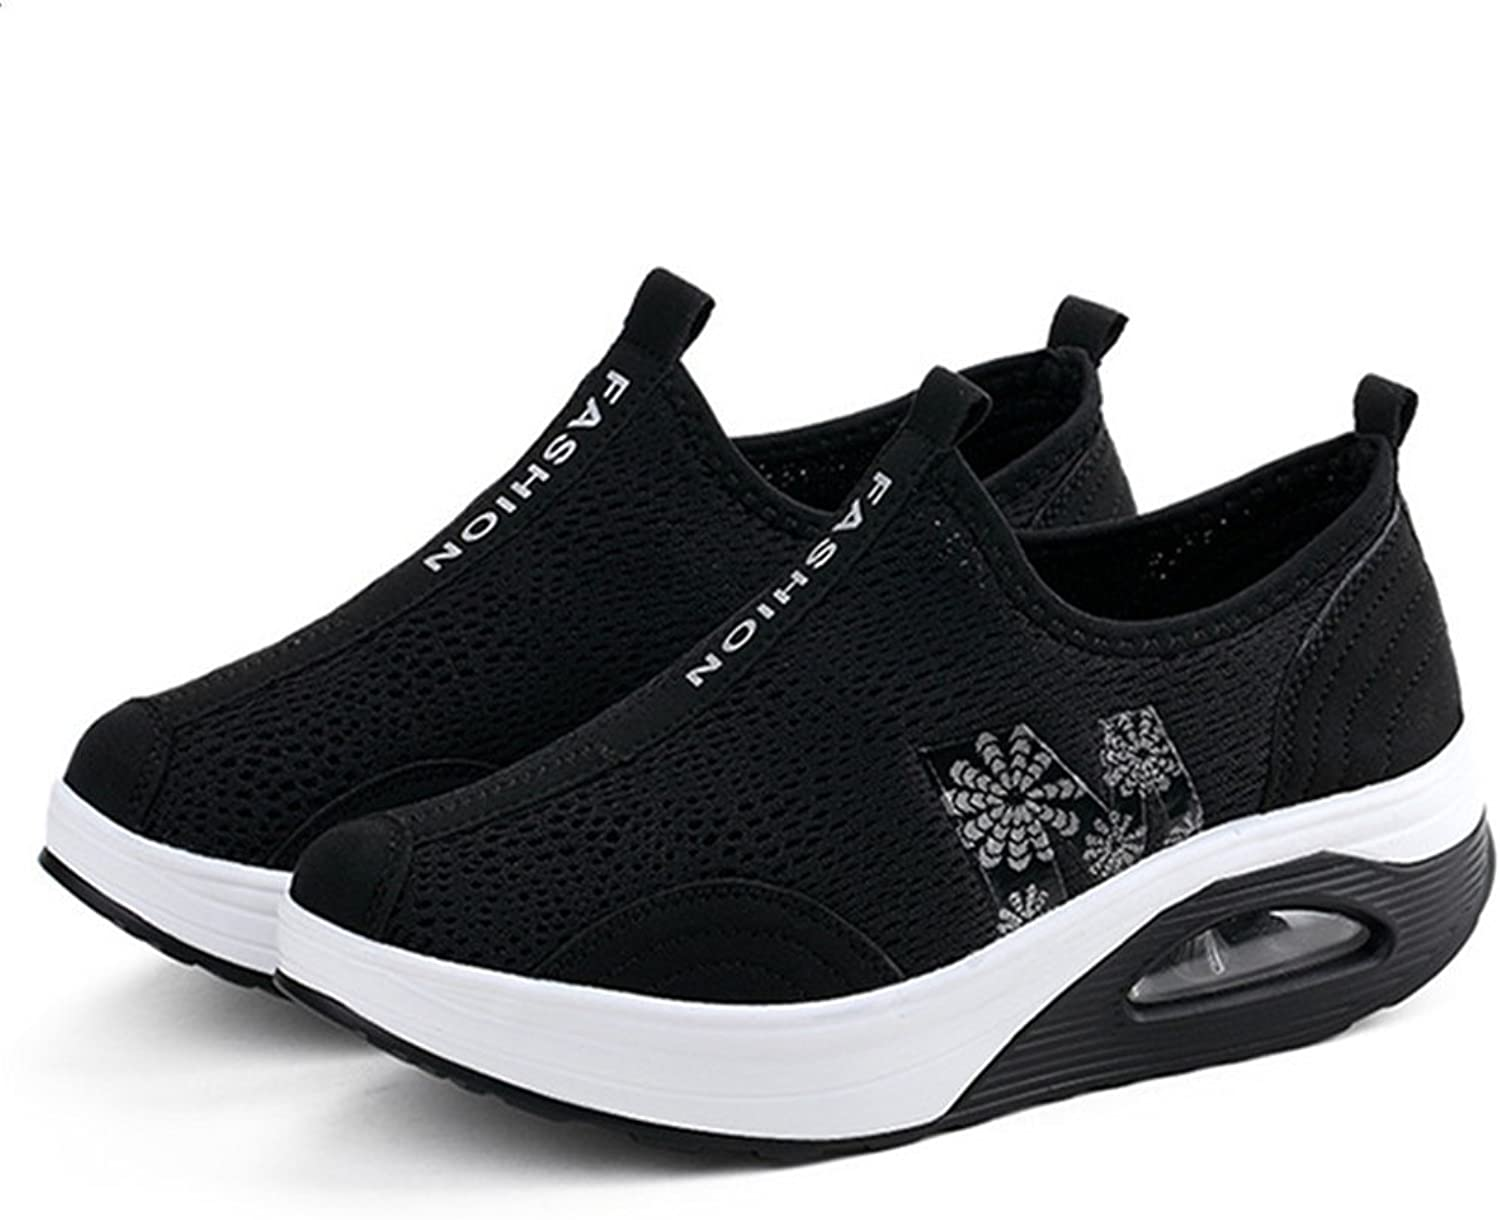 Women Platform Slip On Comfort Loafers Sneakers Driving shoes